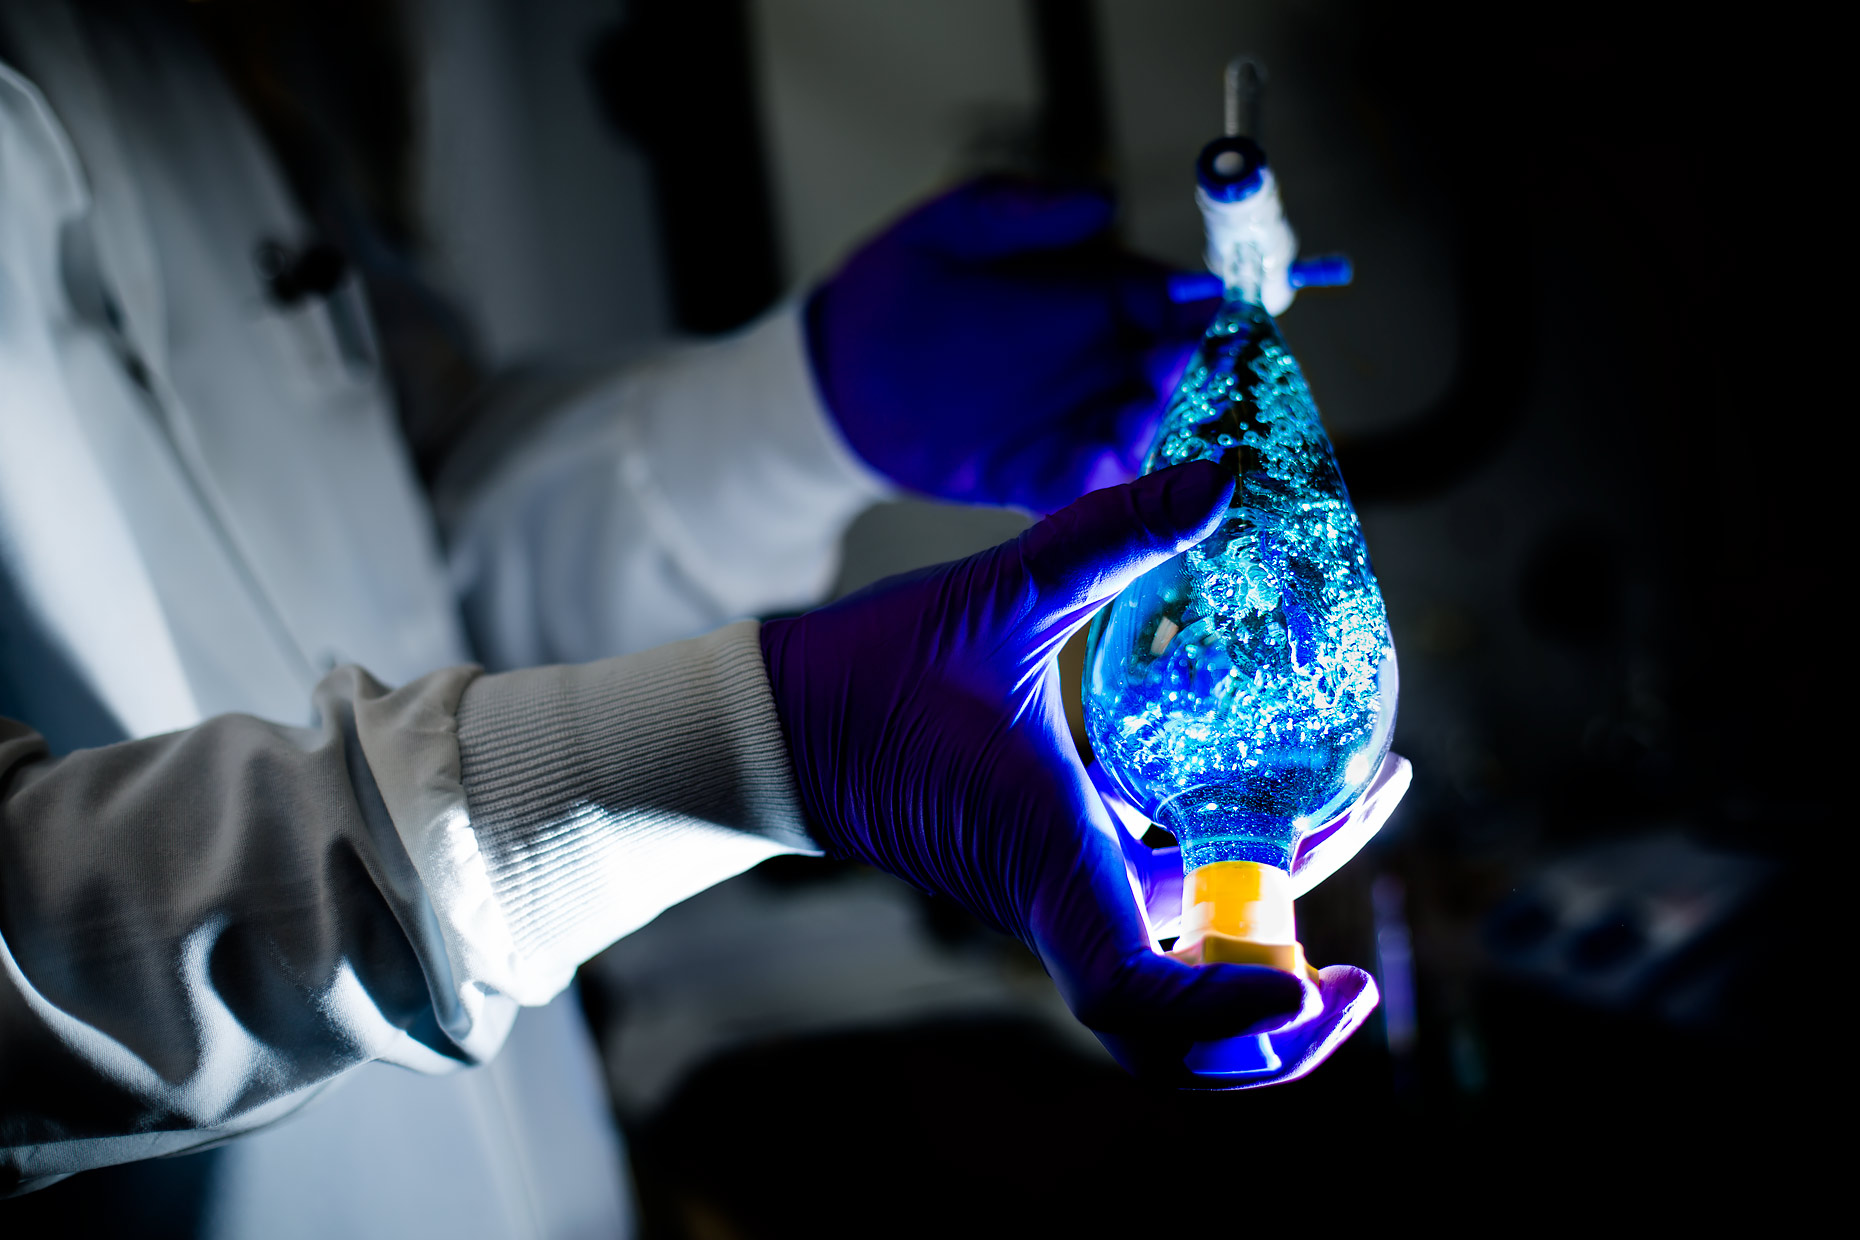 The gloved hands of a technician agitating liquid | Scott Gable industrial photographer